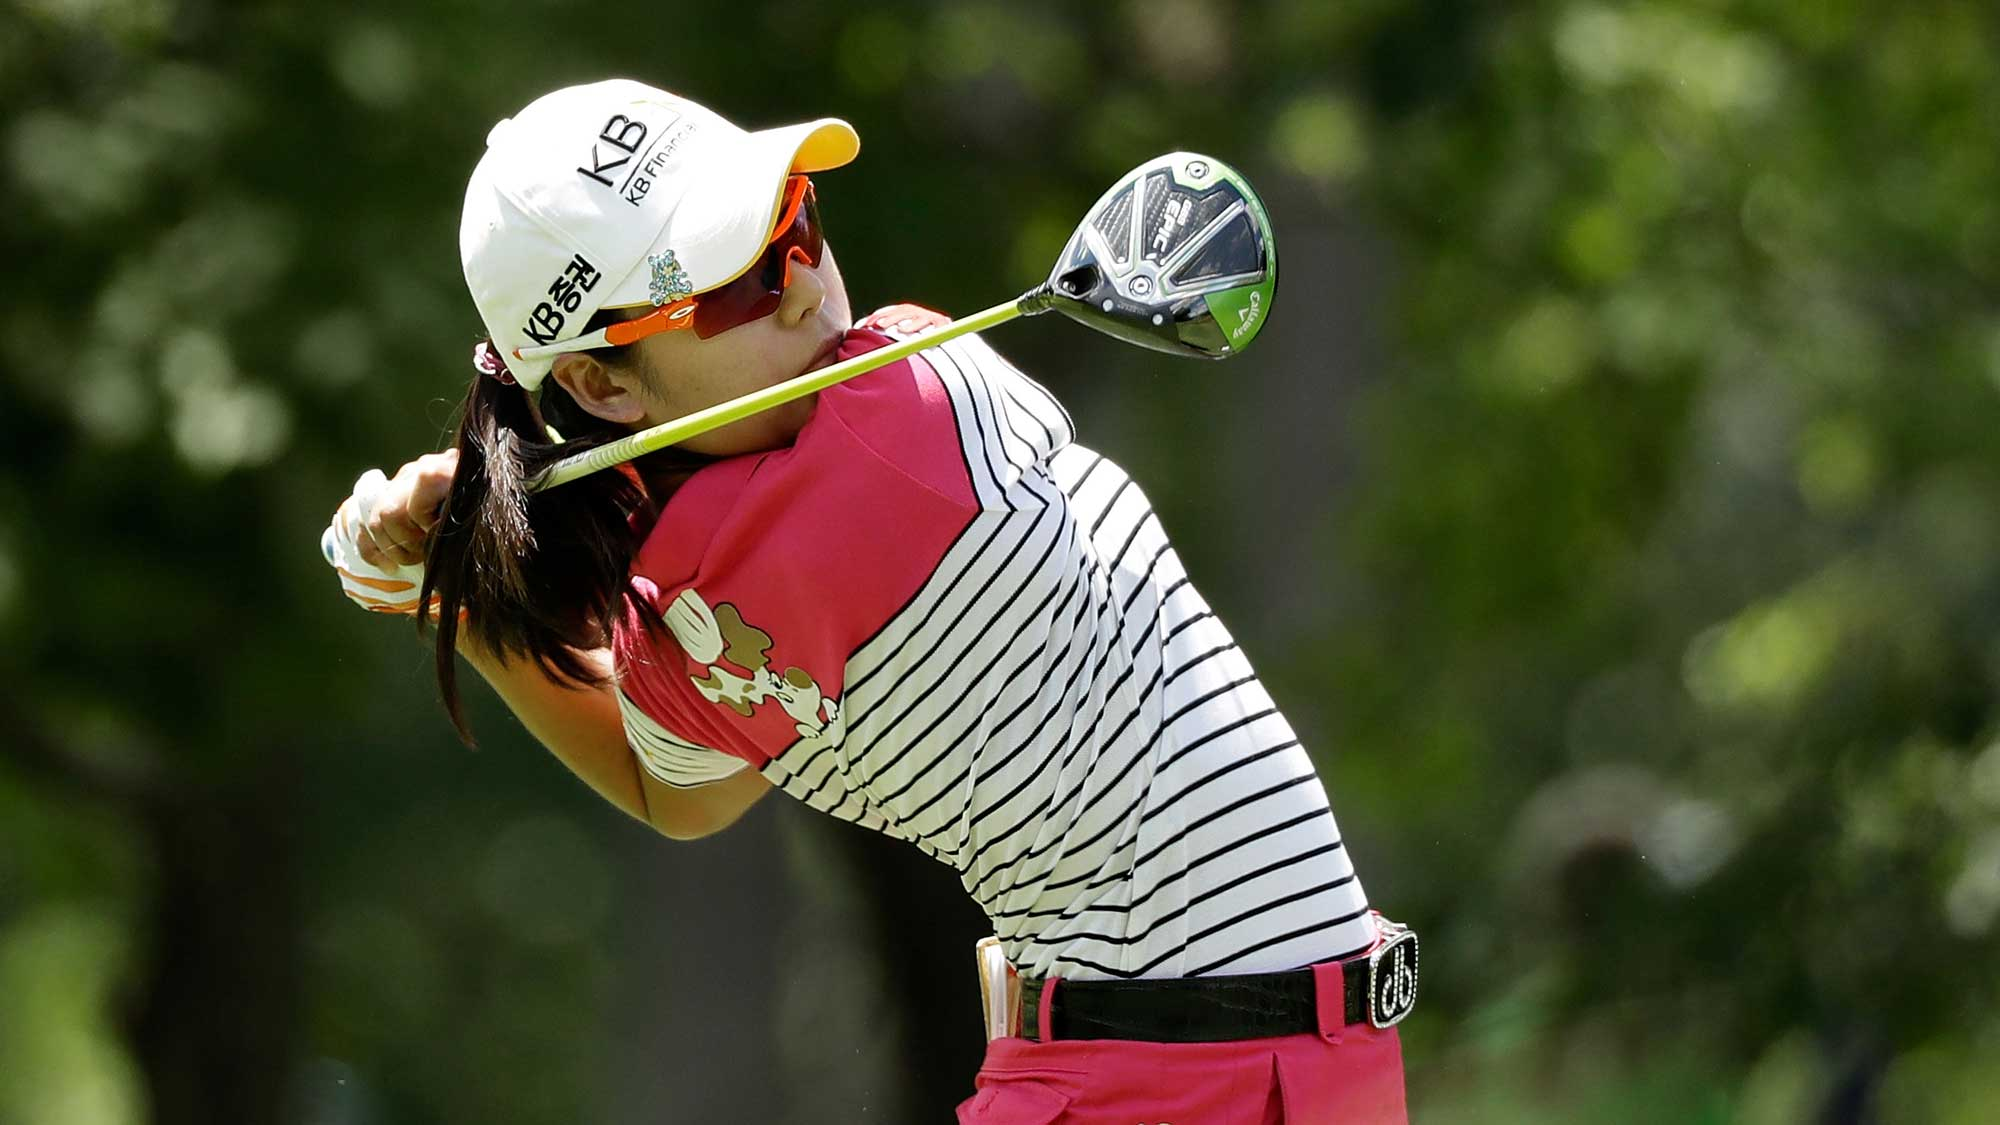 Mi Hyang Lee of South Korea hits her tee shot on the fifth hole during the third round of the 2017 KPMG PGA Championship